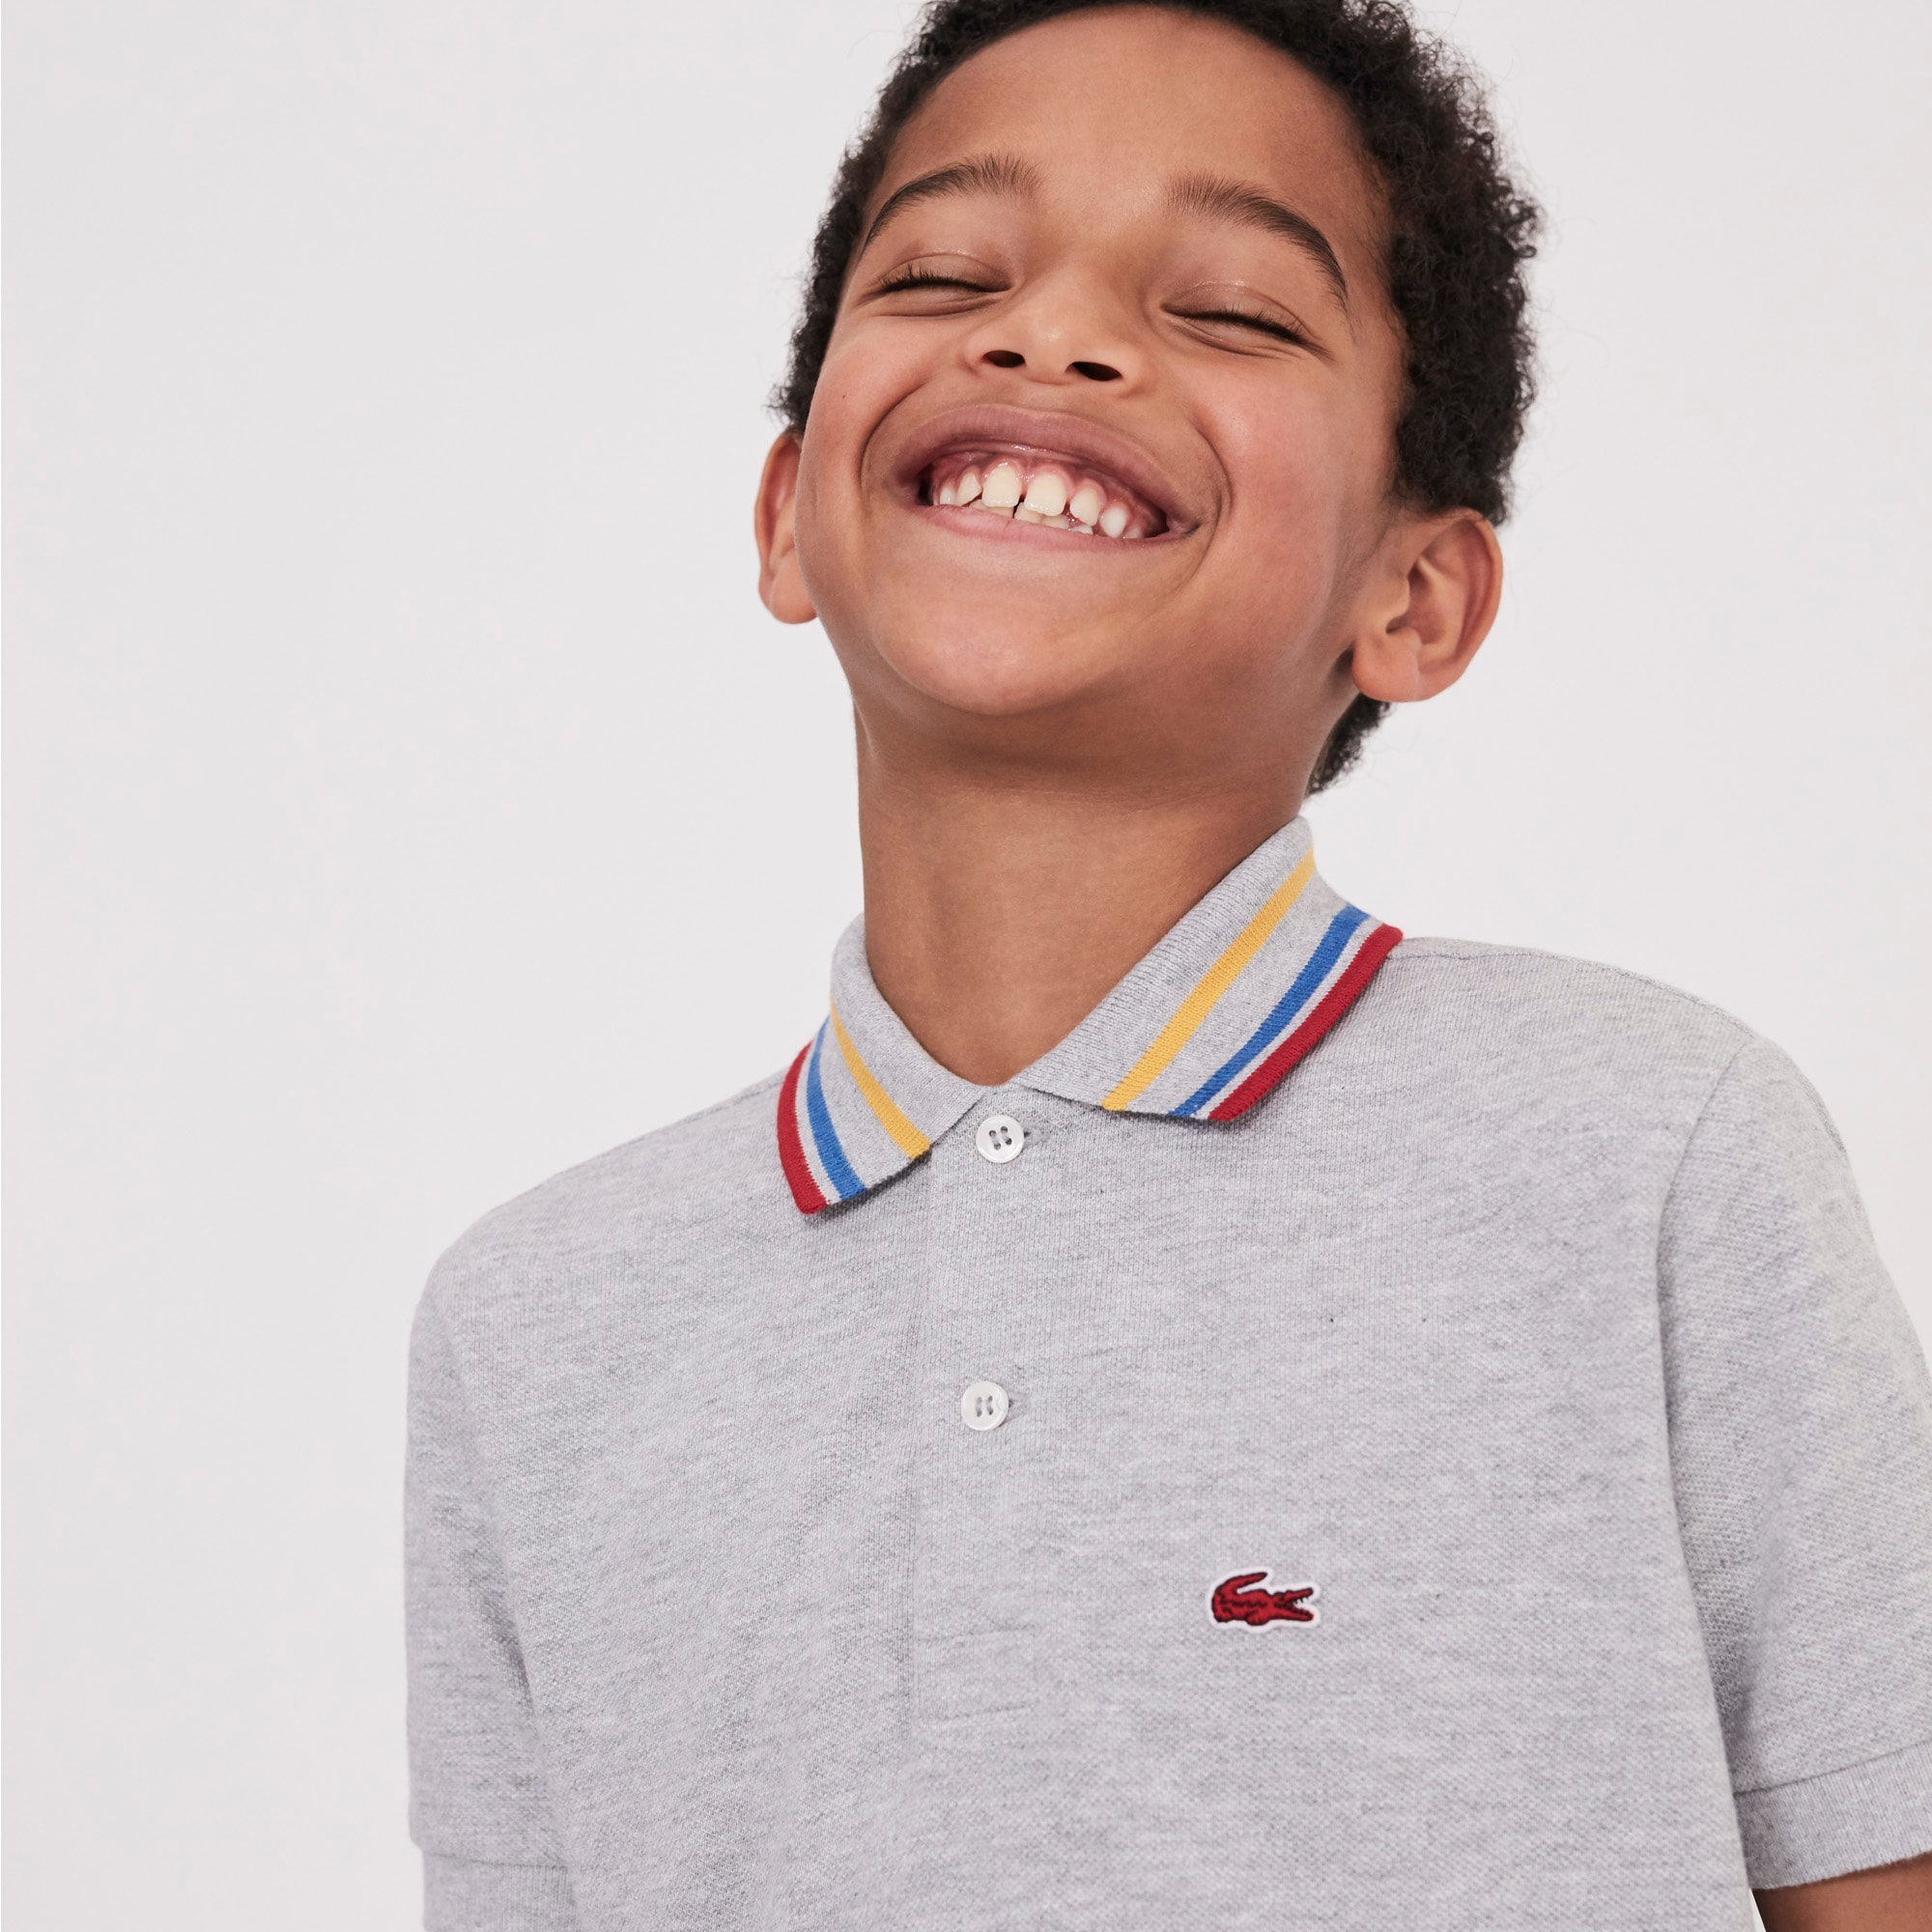 Boys' Lacoste Striped Neck Petit Piqué Polo Shirt